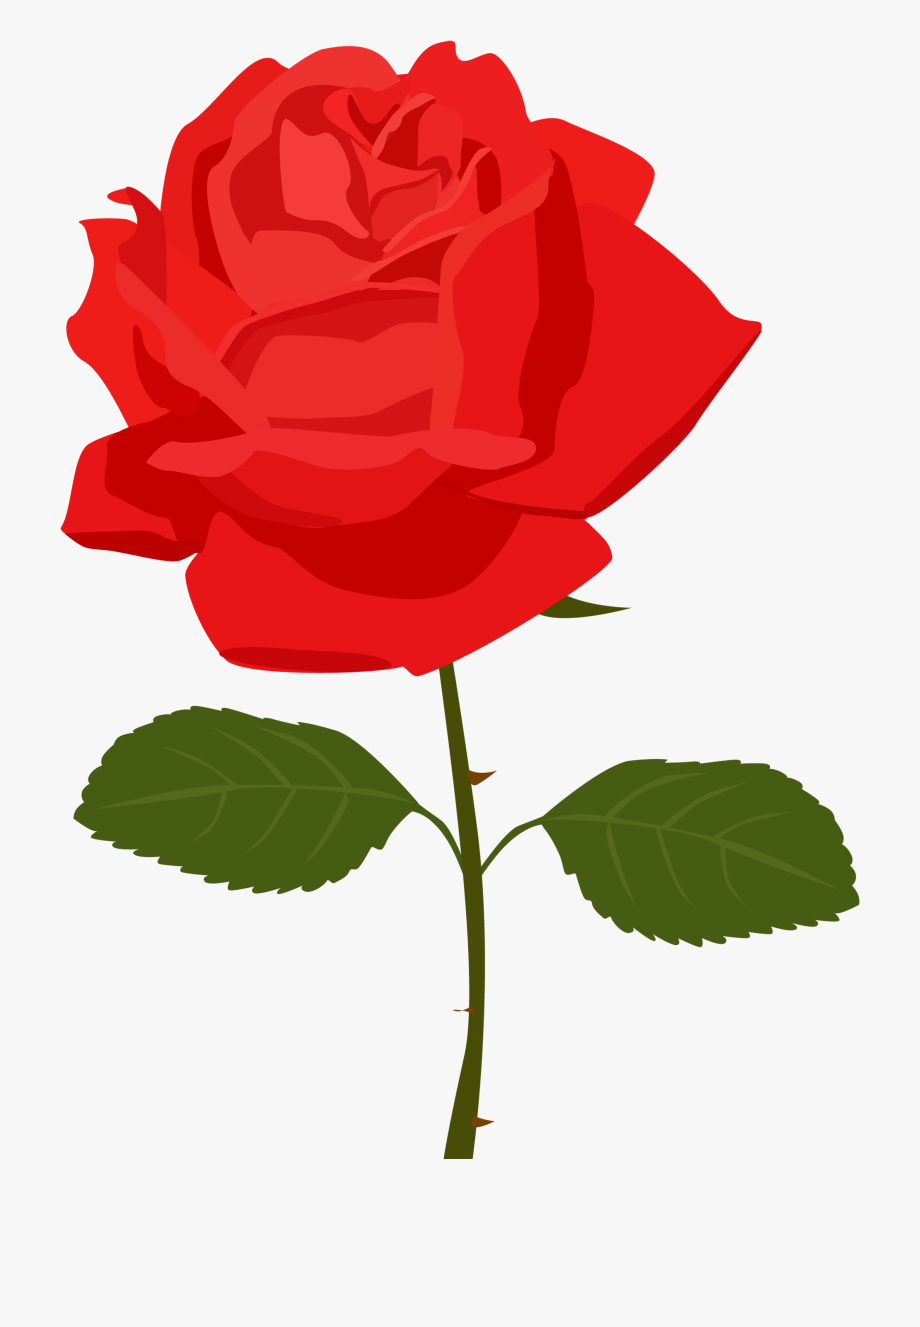 Rose clipart without backgroaud image transparent Dozen Red Roses Clipart 10 Re - Rose Clipart Transparent ... image transparent